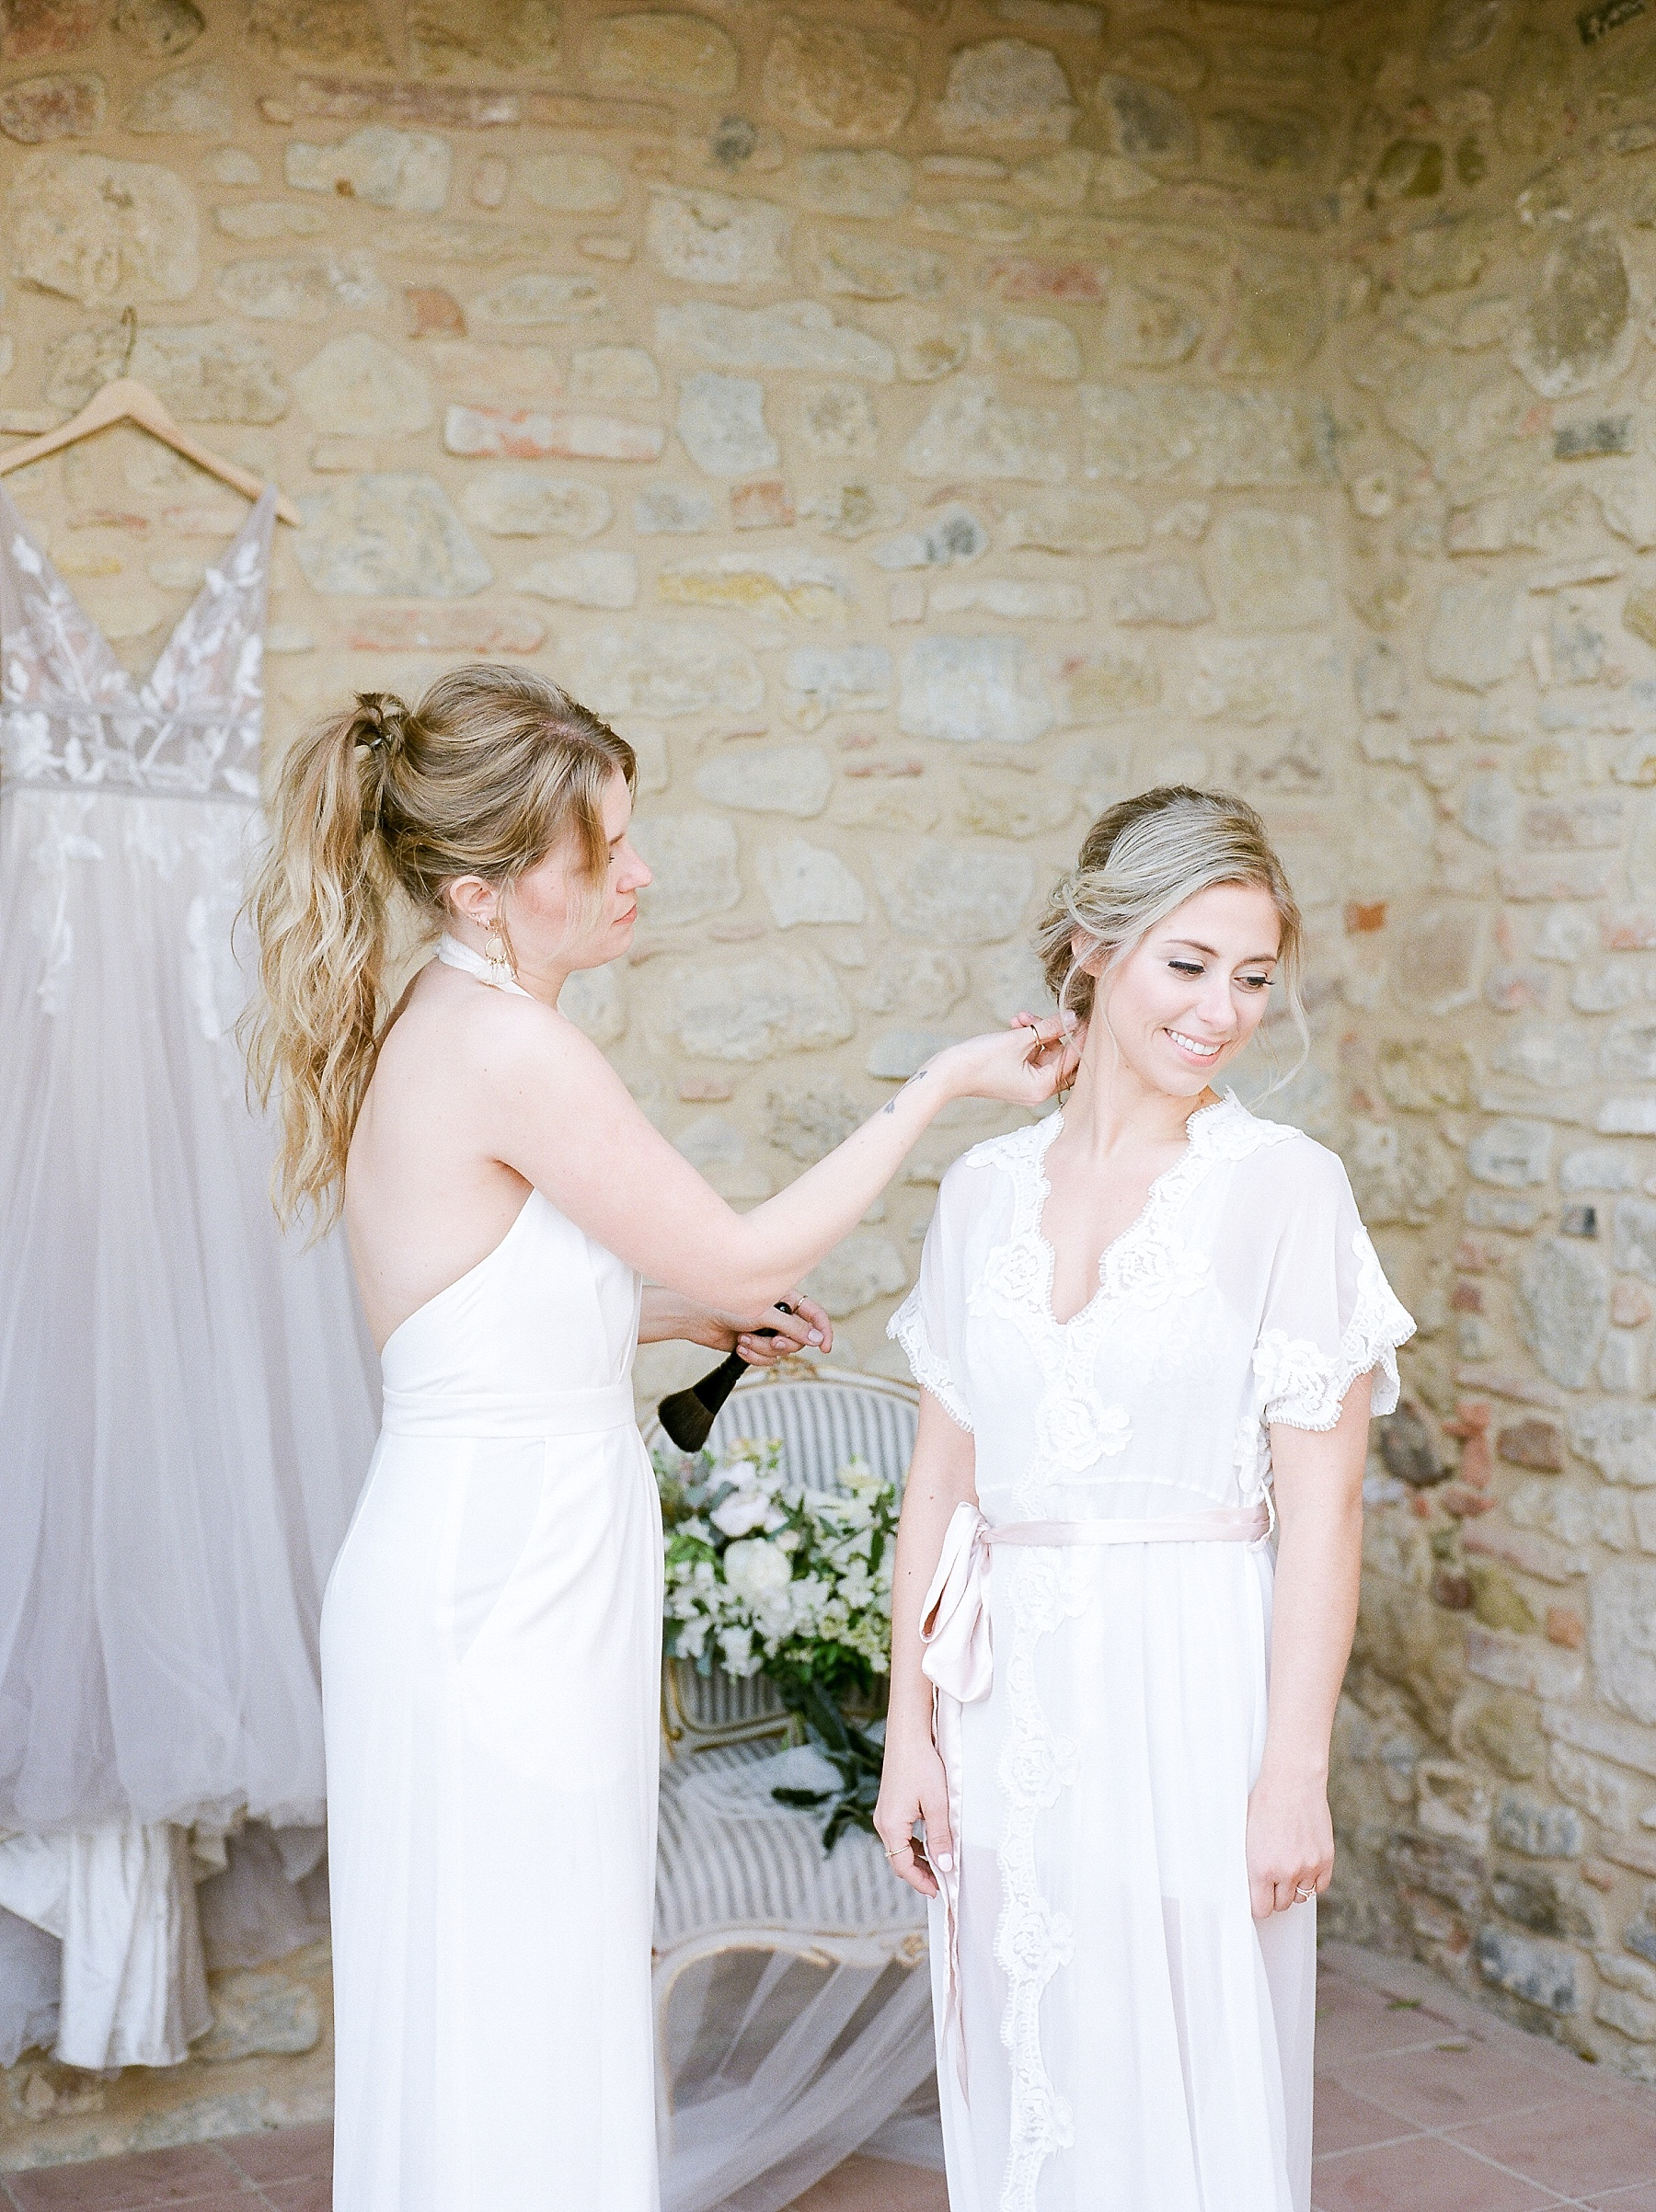 All White Destination Wedding in the Hills of Tuscany Italy at Estate Borgo Petrognano by Kelsi Kliethermes Photography_0026.jpg